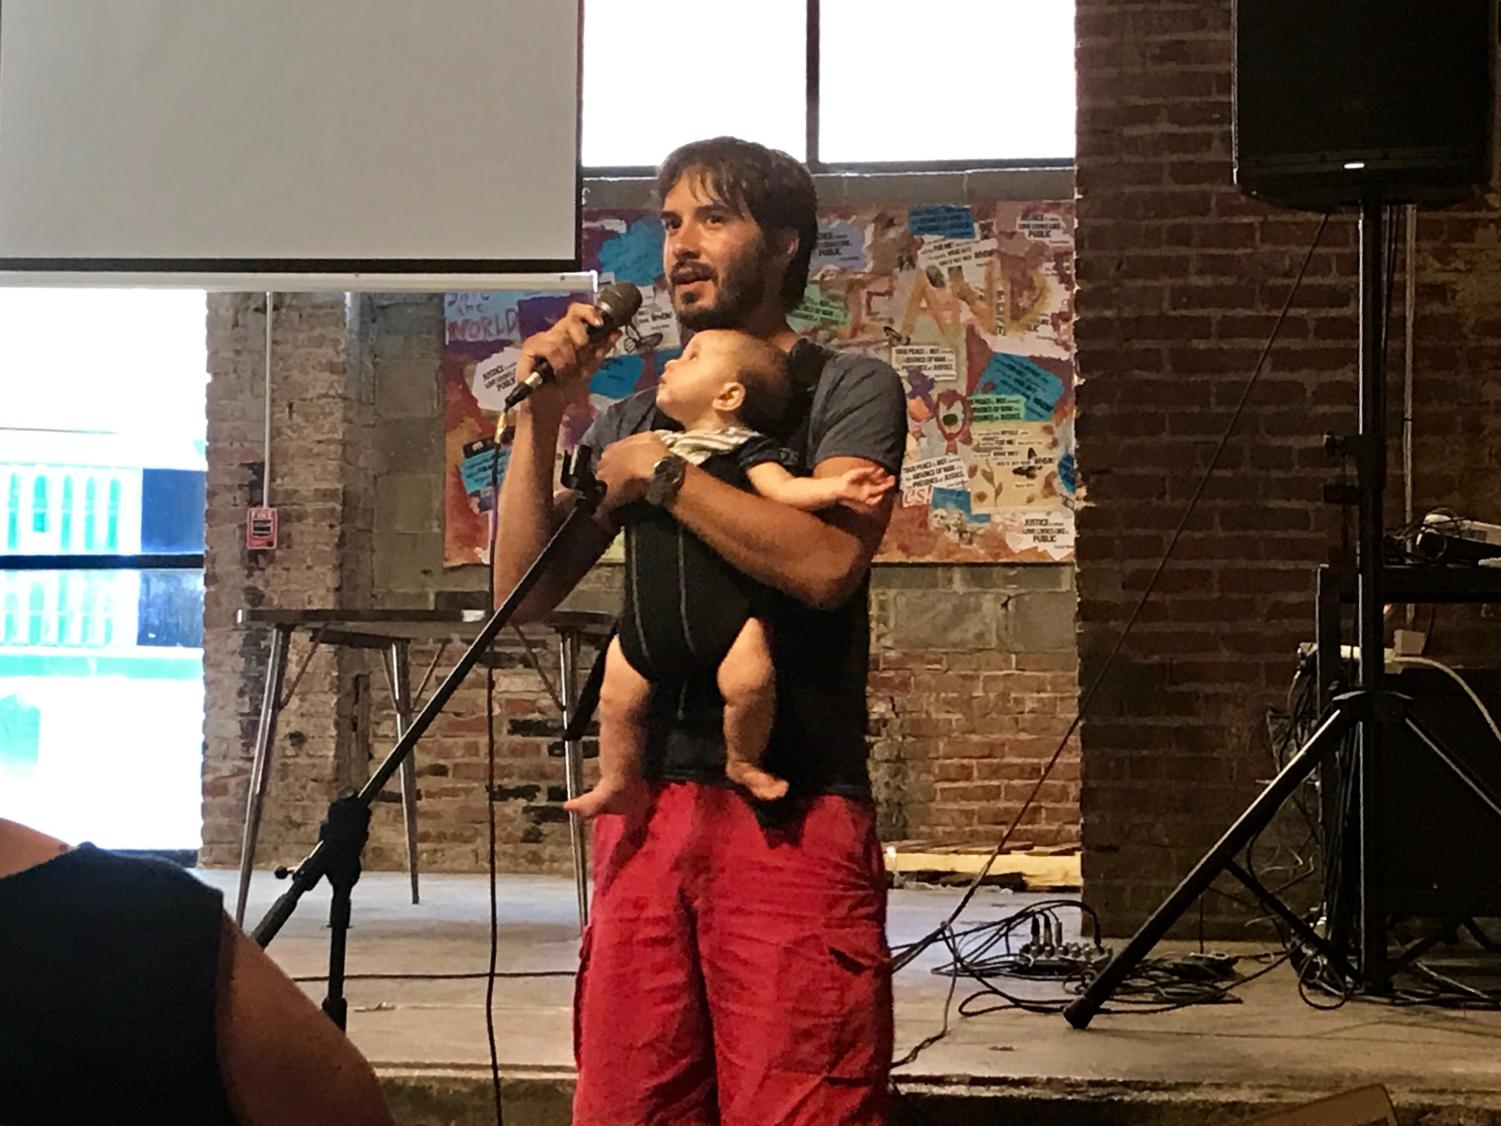 Billy Epting, who lives in Lawrenceville, brought his six-month-old daughter to City Councilperson Erika Strassburger's community listening session Wednesday.